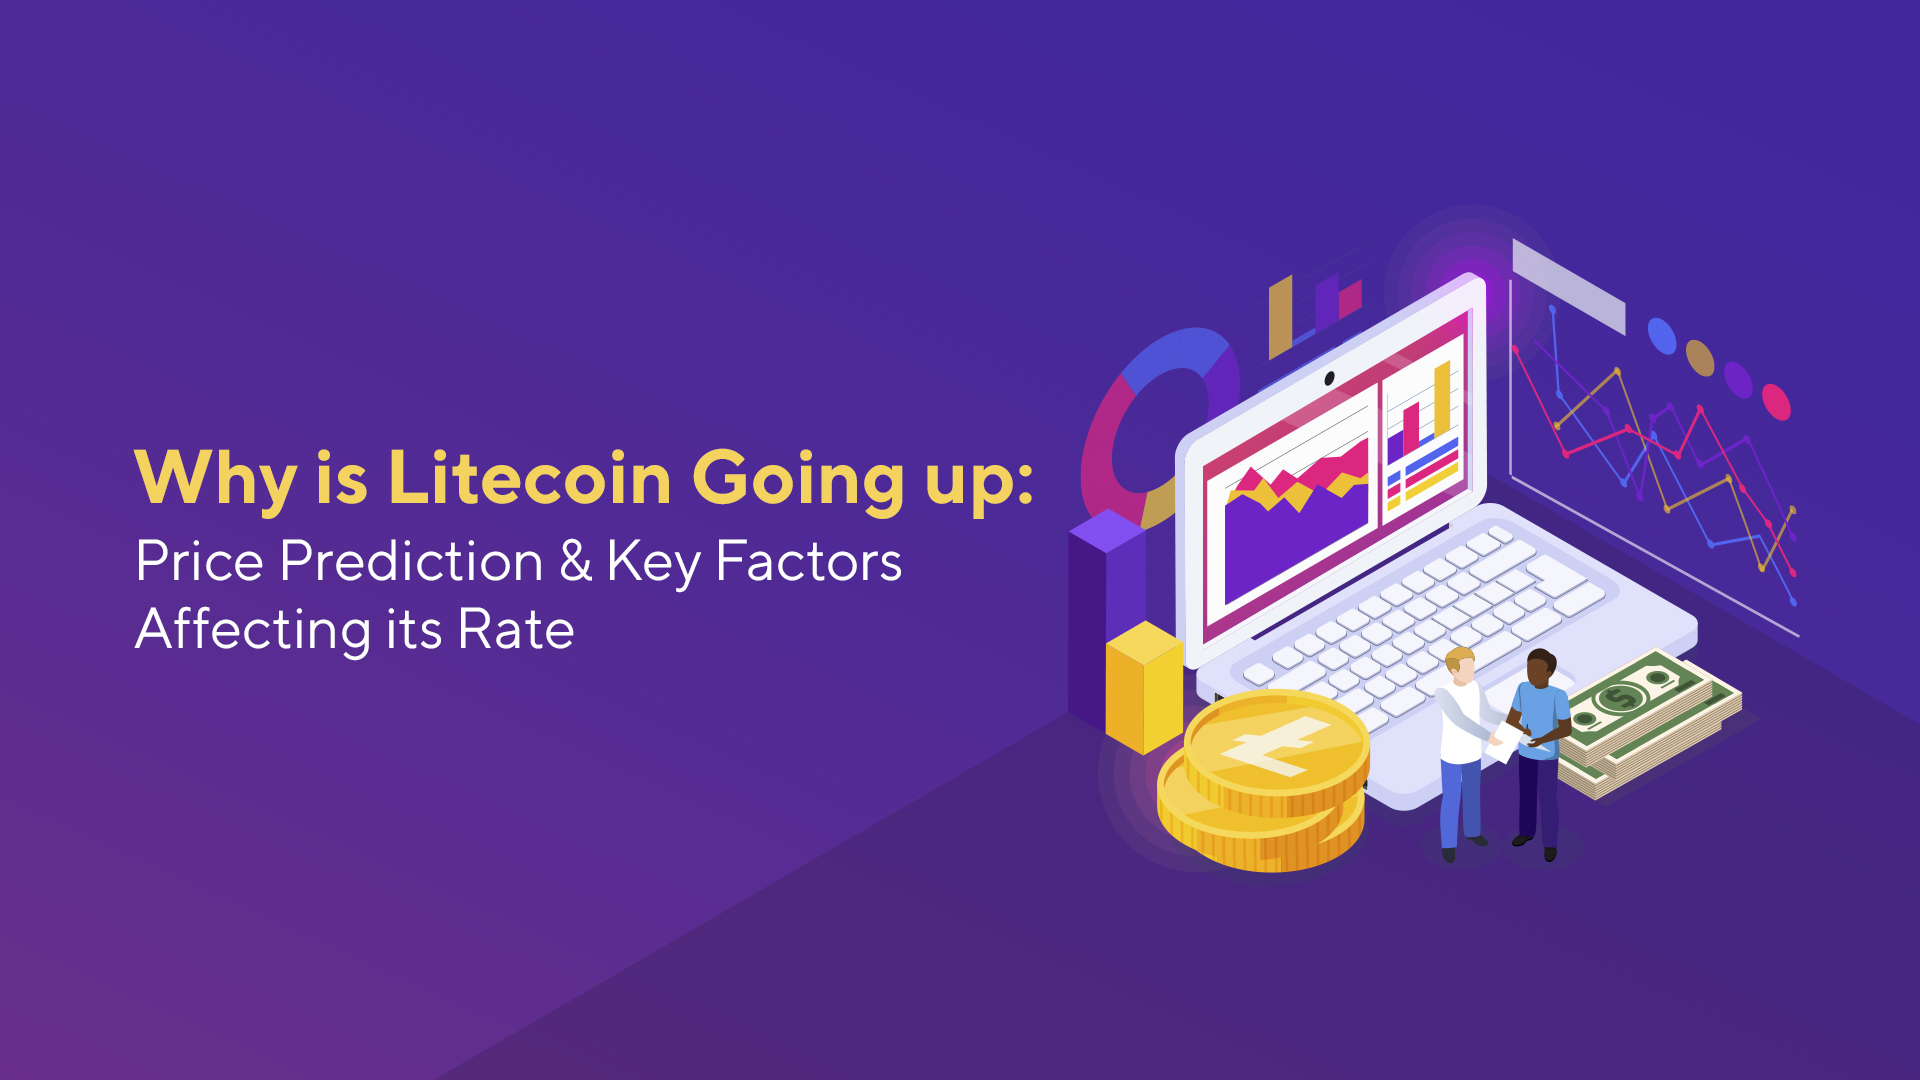 Why is Litecoin Going up: Litecoin Price Prediction